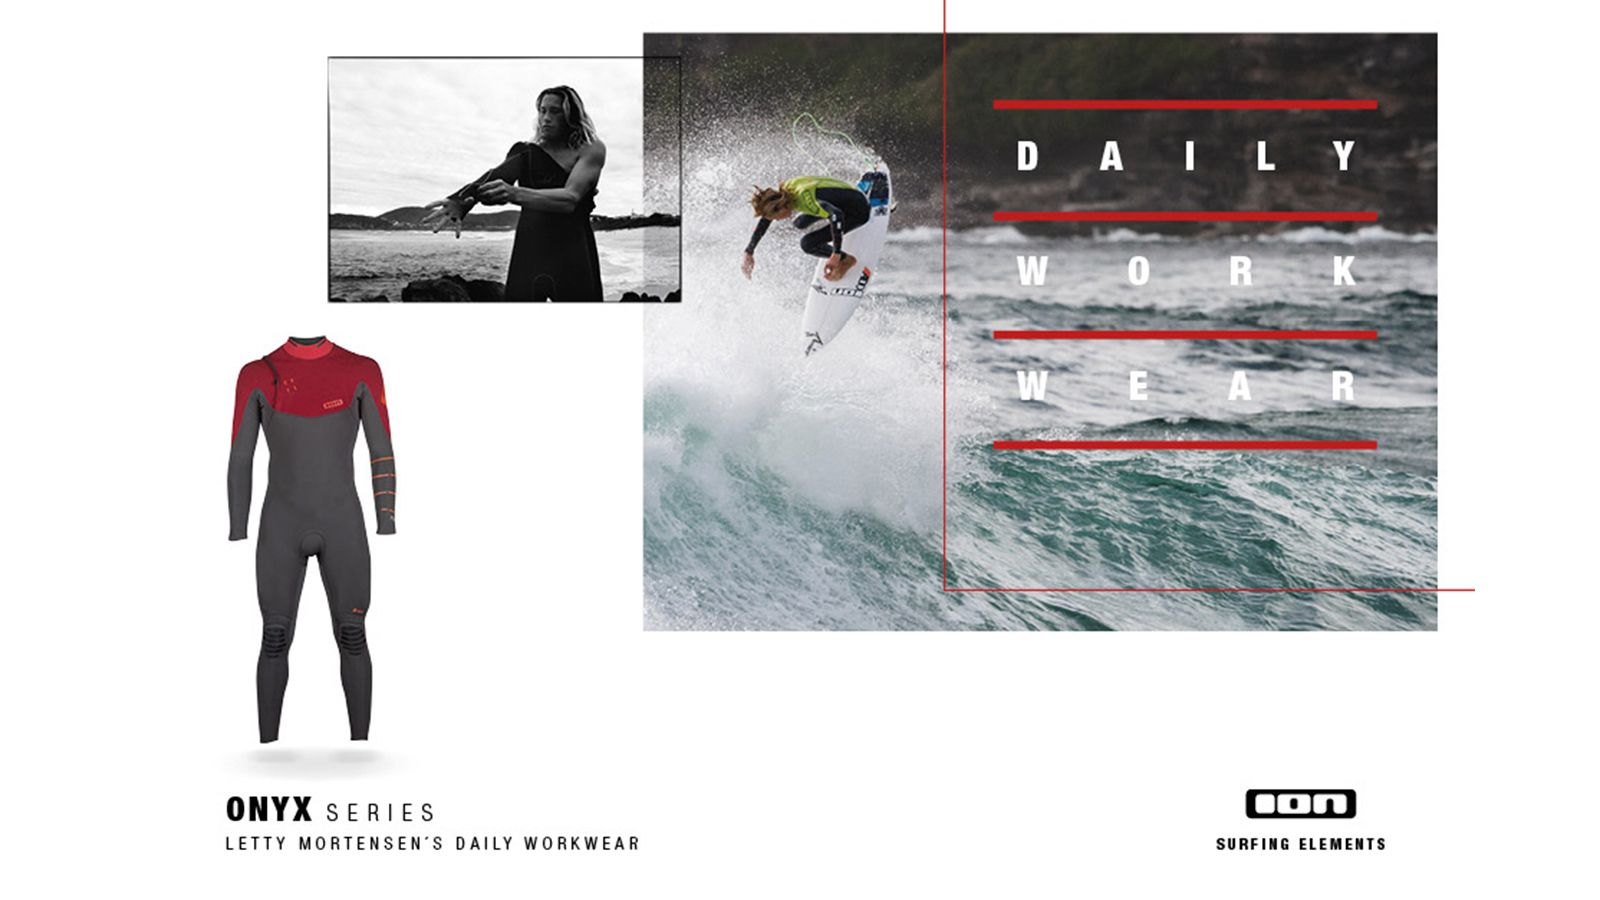 ION surf culture 2016